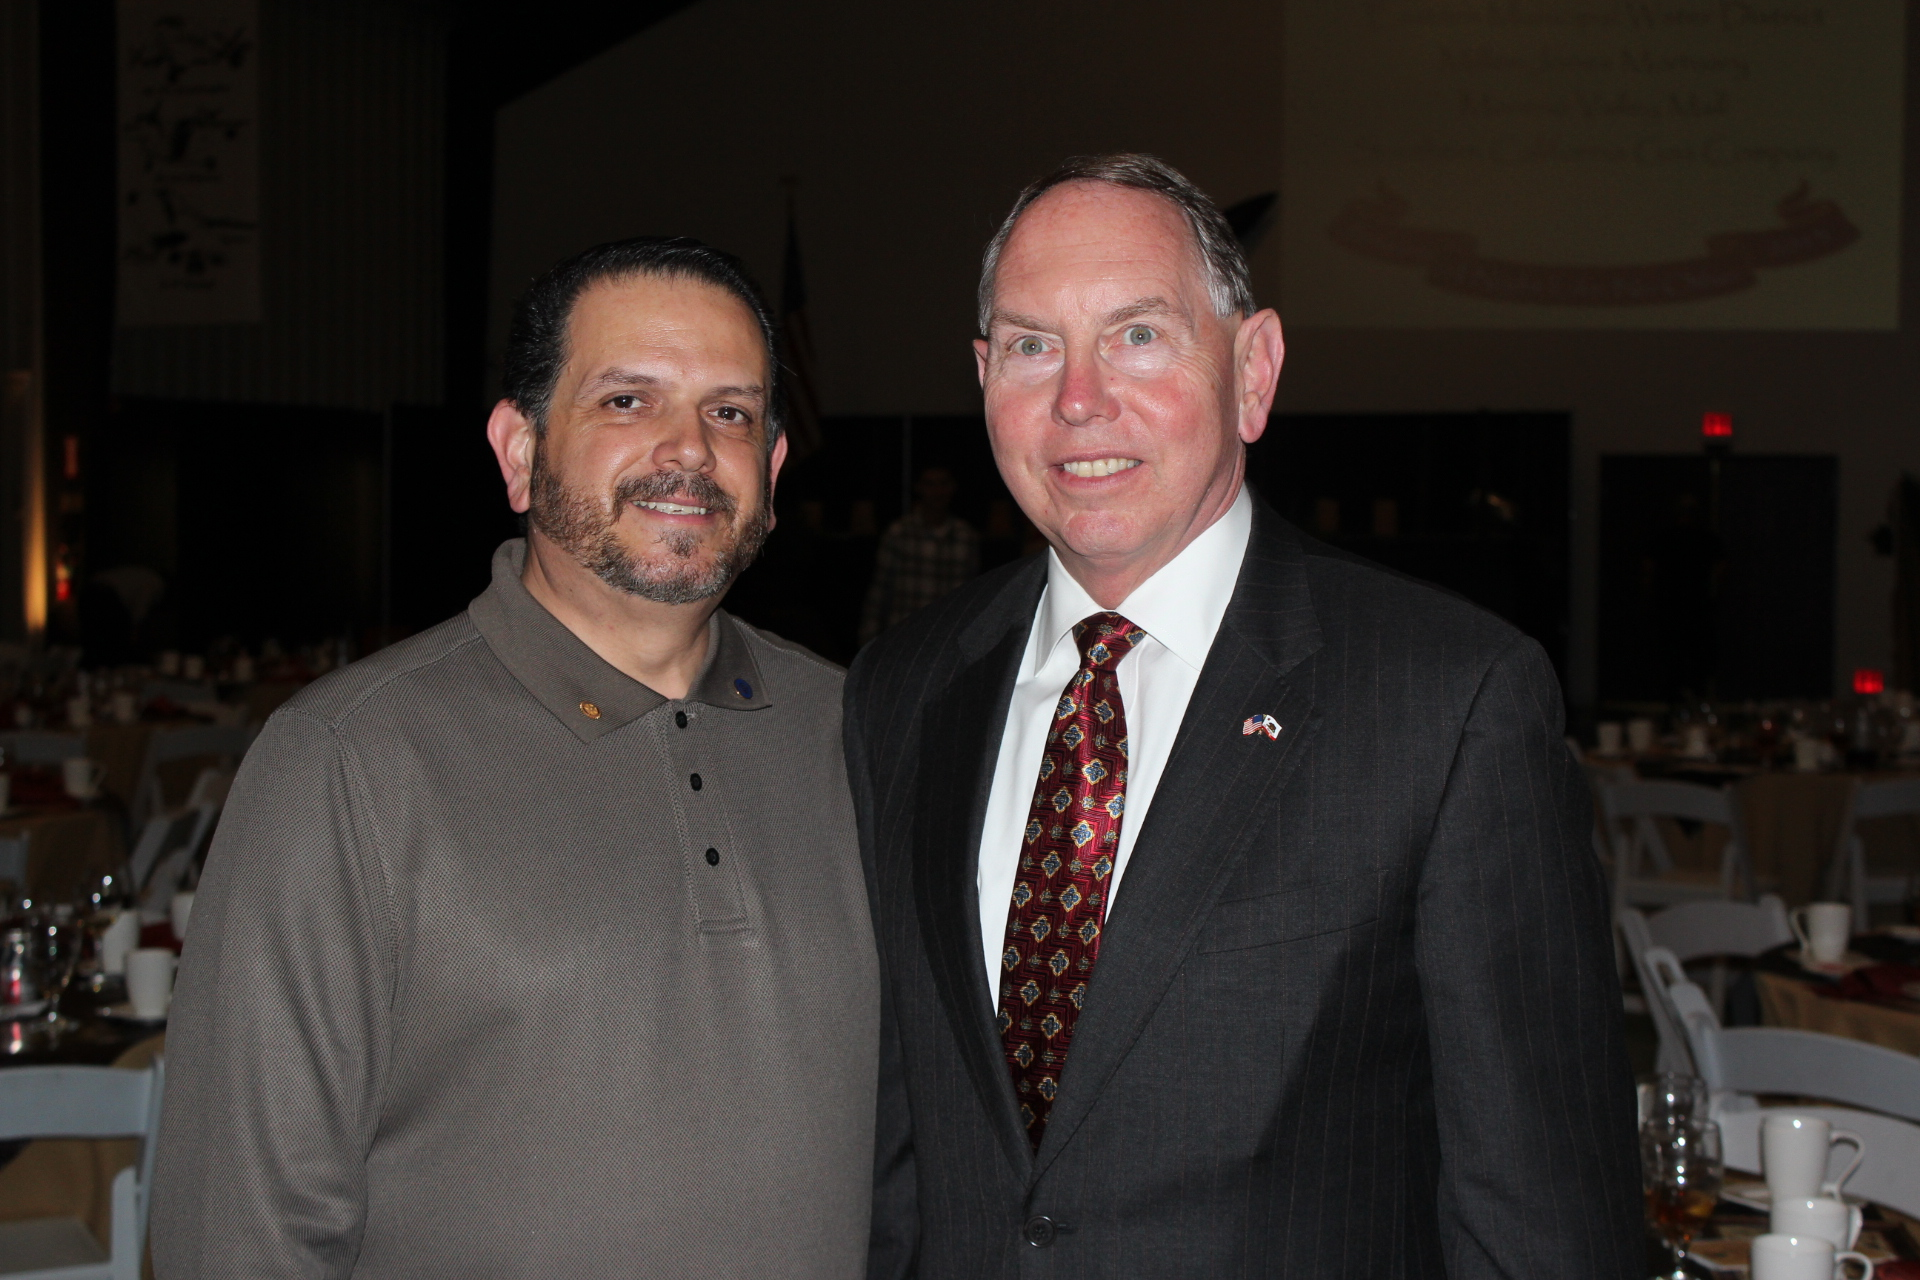 Senator Richard D. Roth and Oscar Valdepeña, President/CEO of Moreno Valley Chamber of Commerce